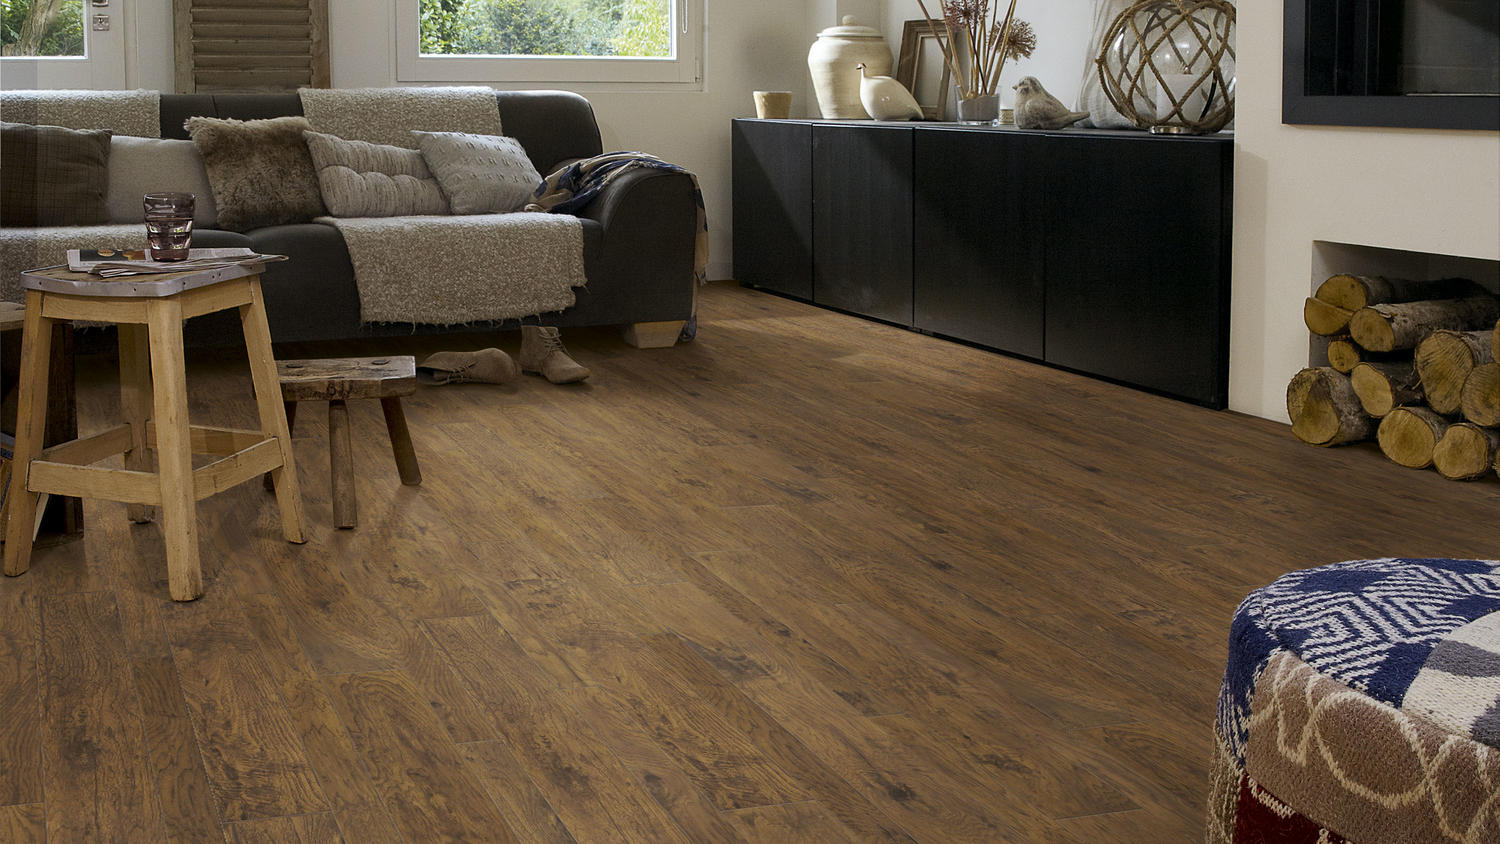 en floor eu flooring benefits laminate in tarkett hp node nordicsaoul